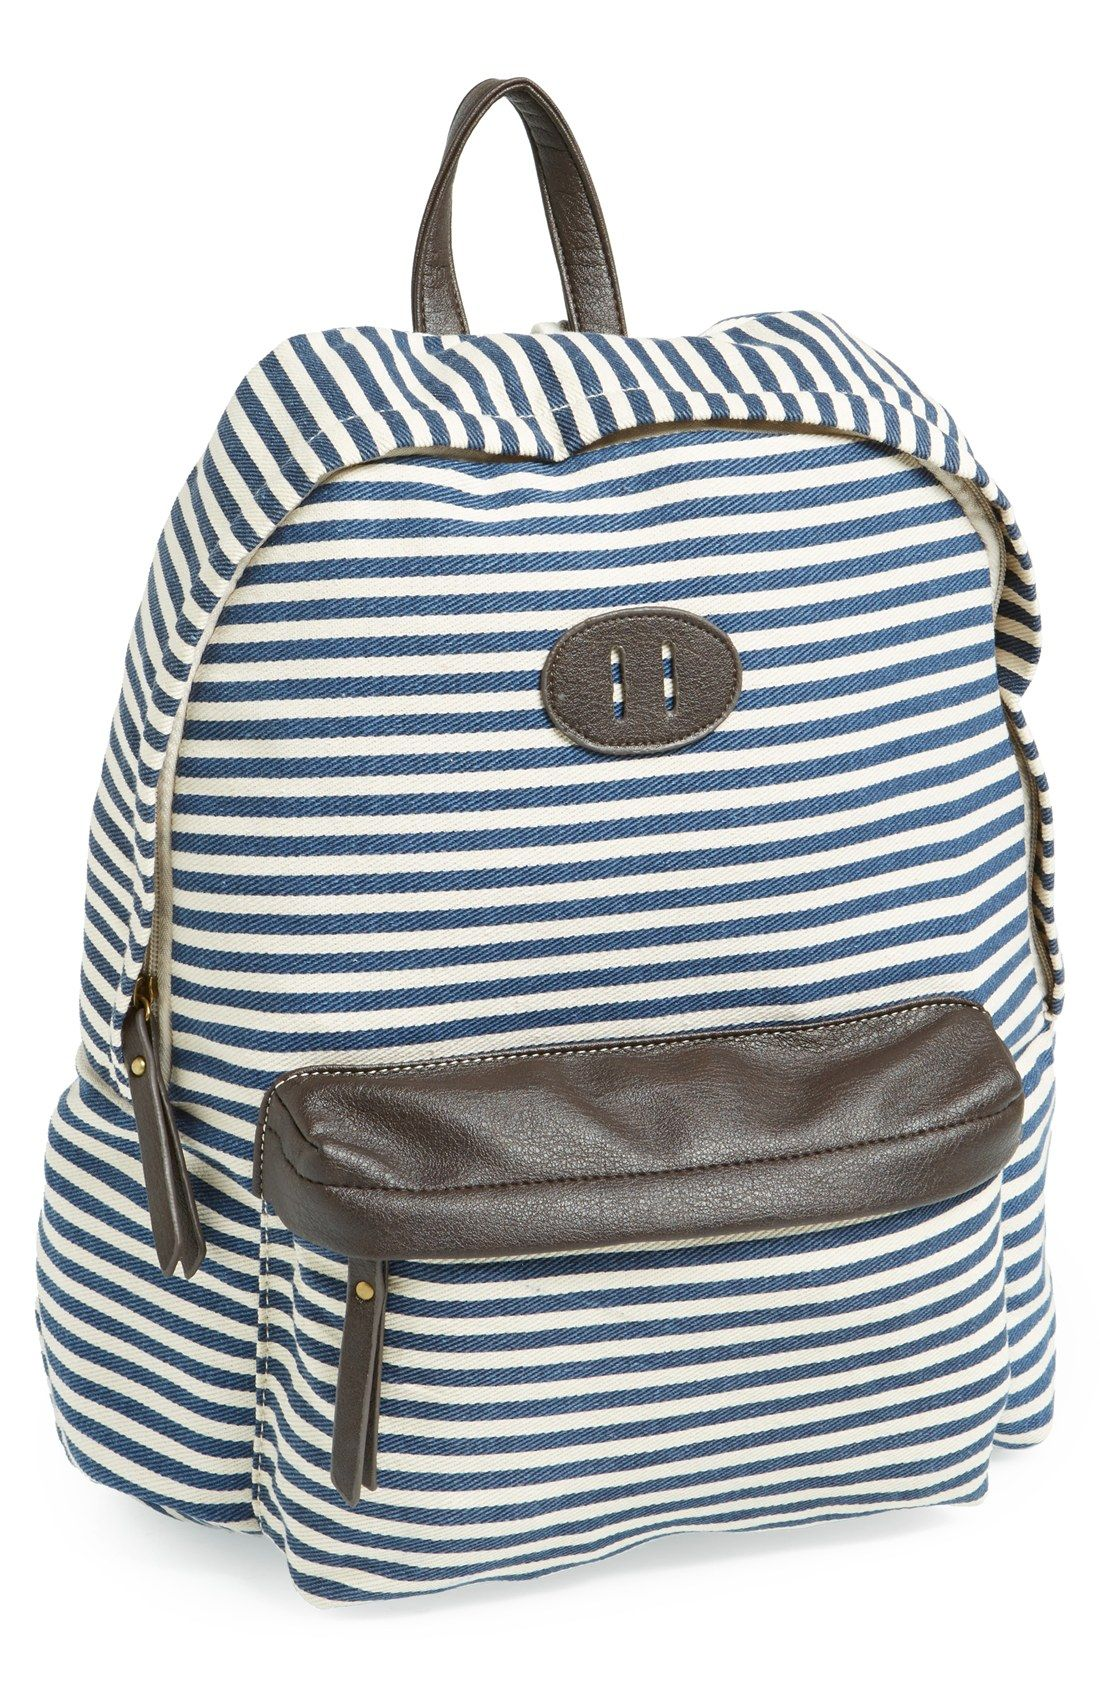 Cute striped backpack for school  7bd3c87c9e517